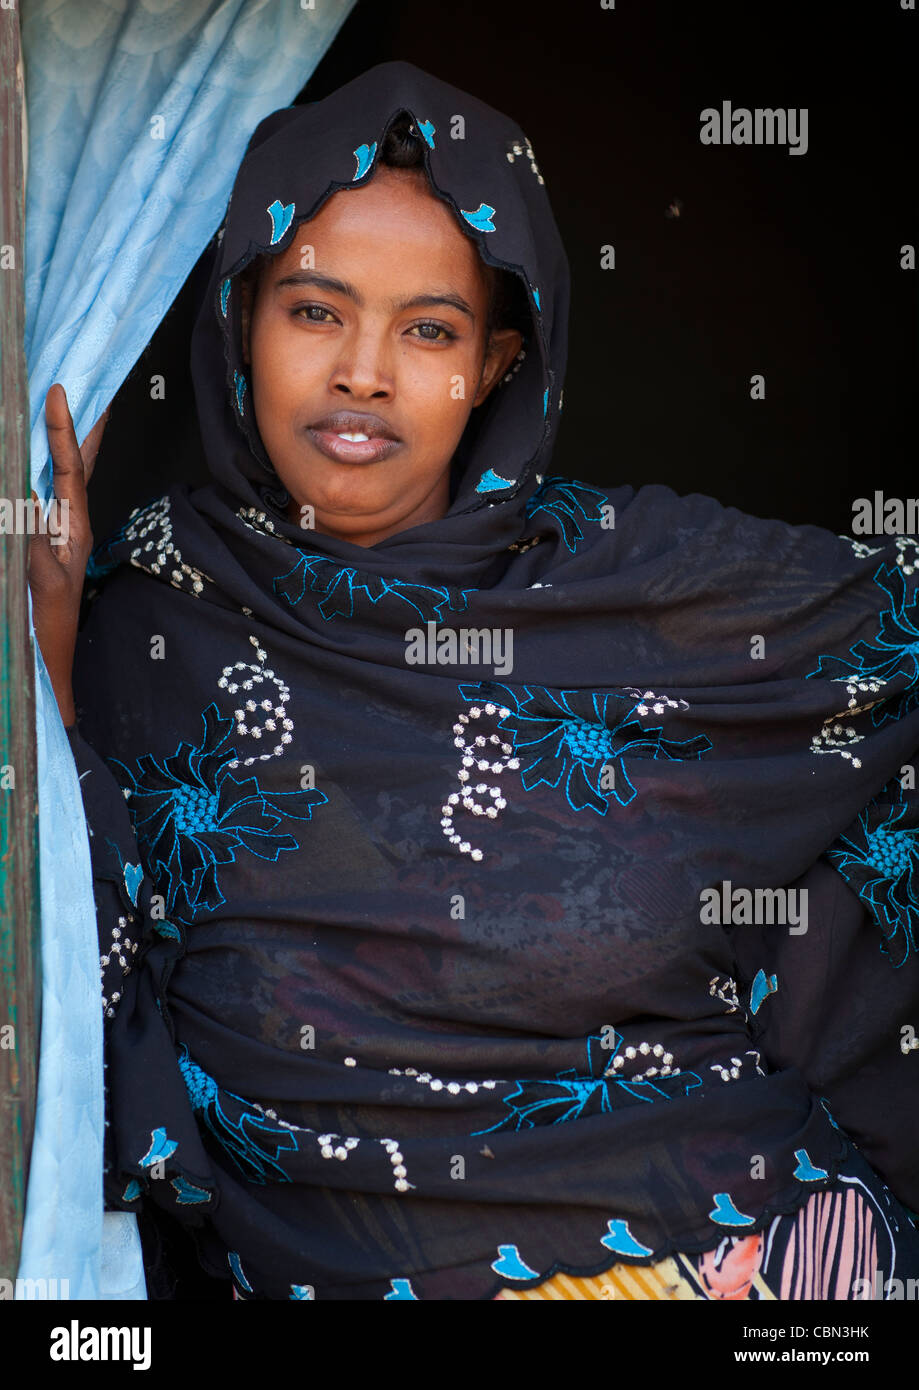 Cute Black Young Veiled Woman Portrait Somaliland - Stock Image